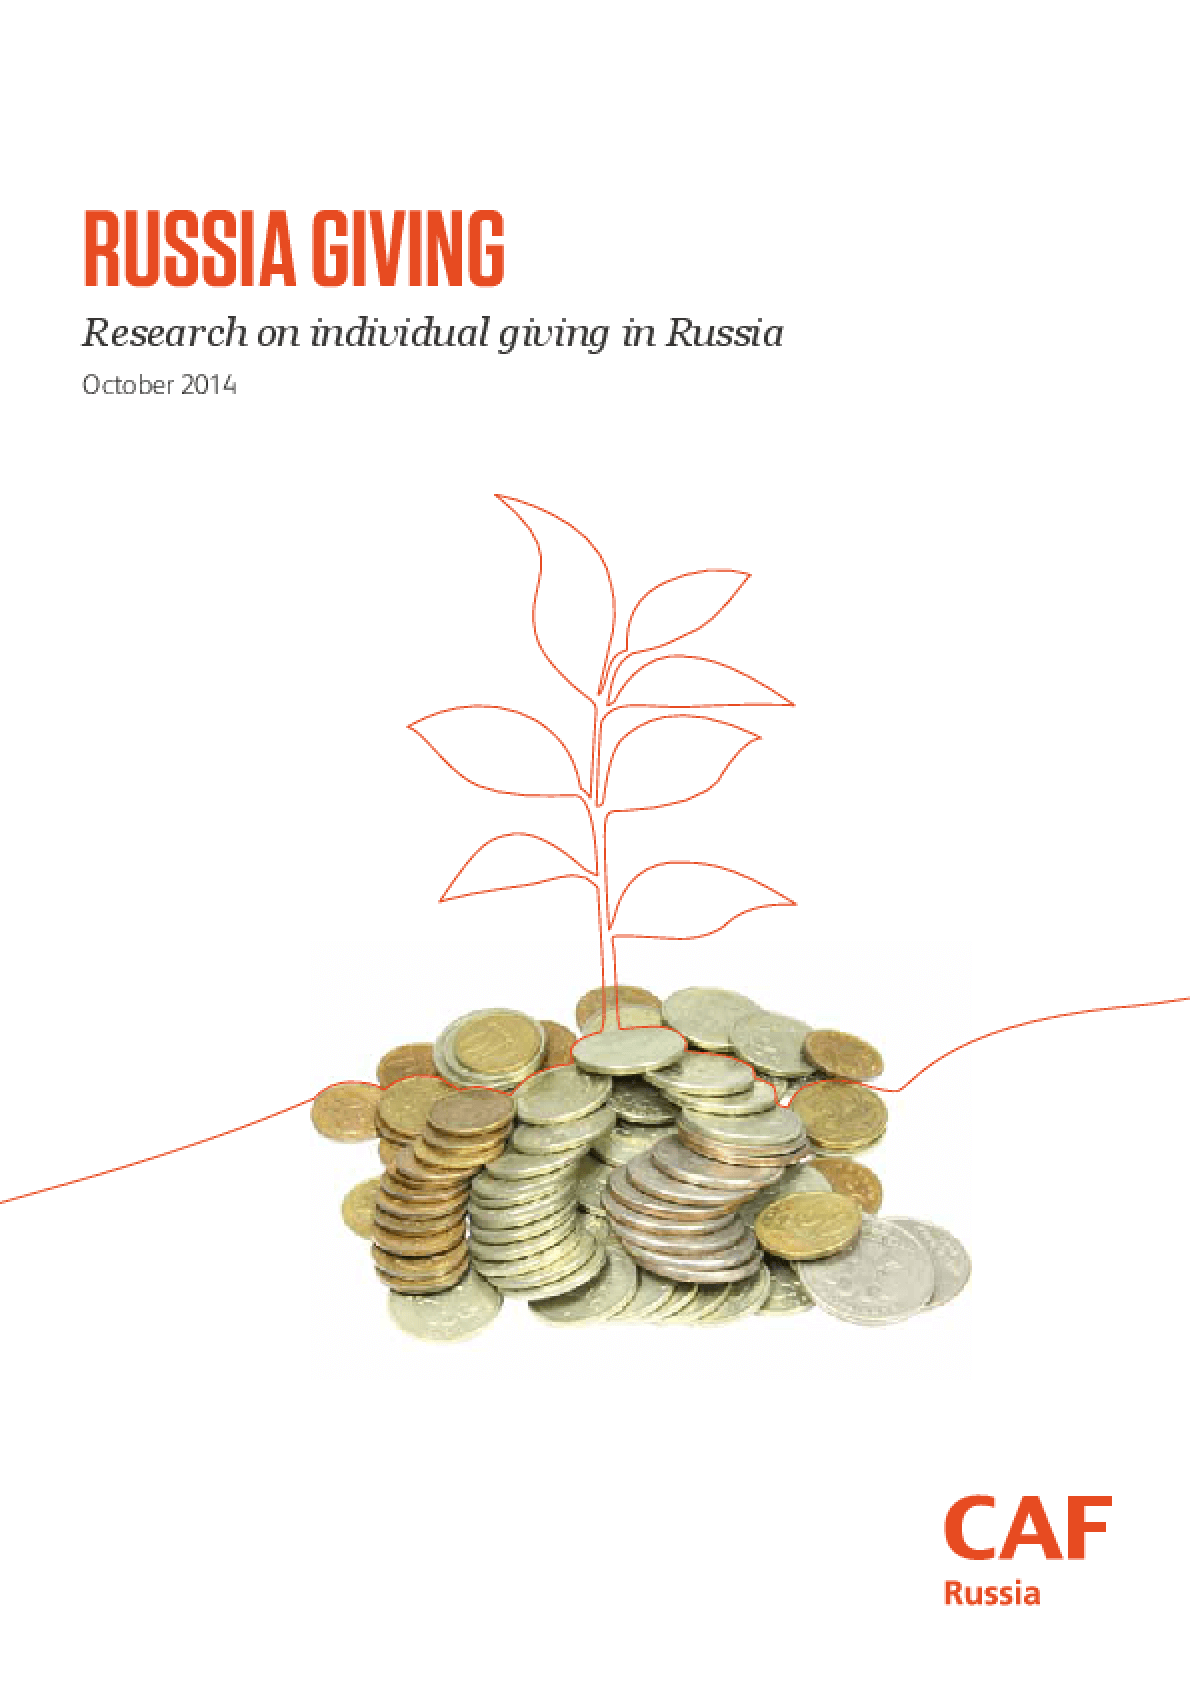 Russia Giving: Research on individual giving in Russia